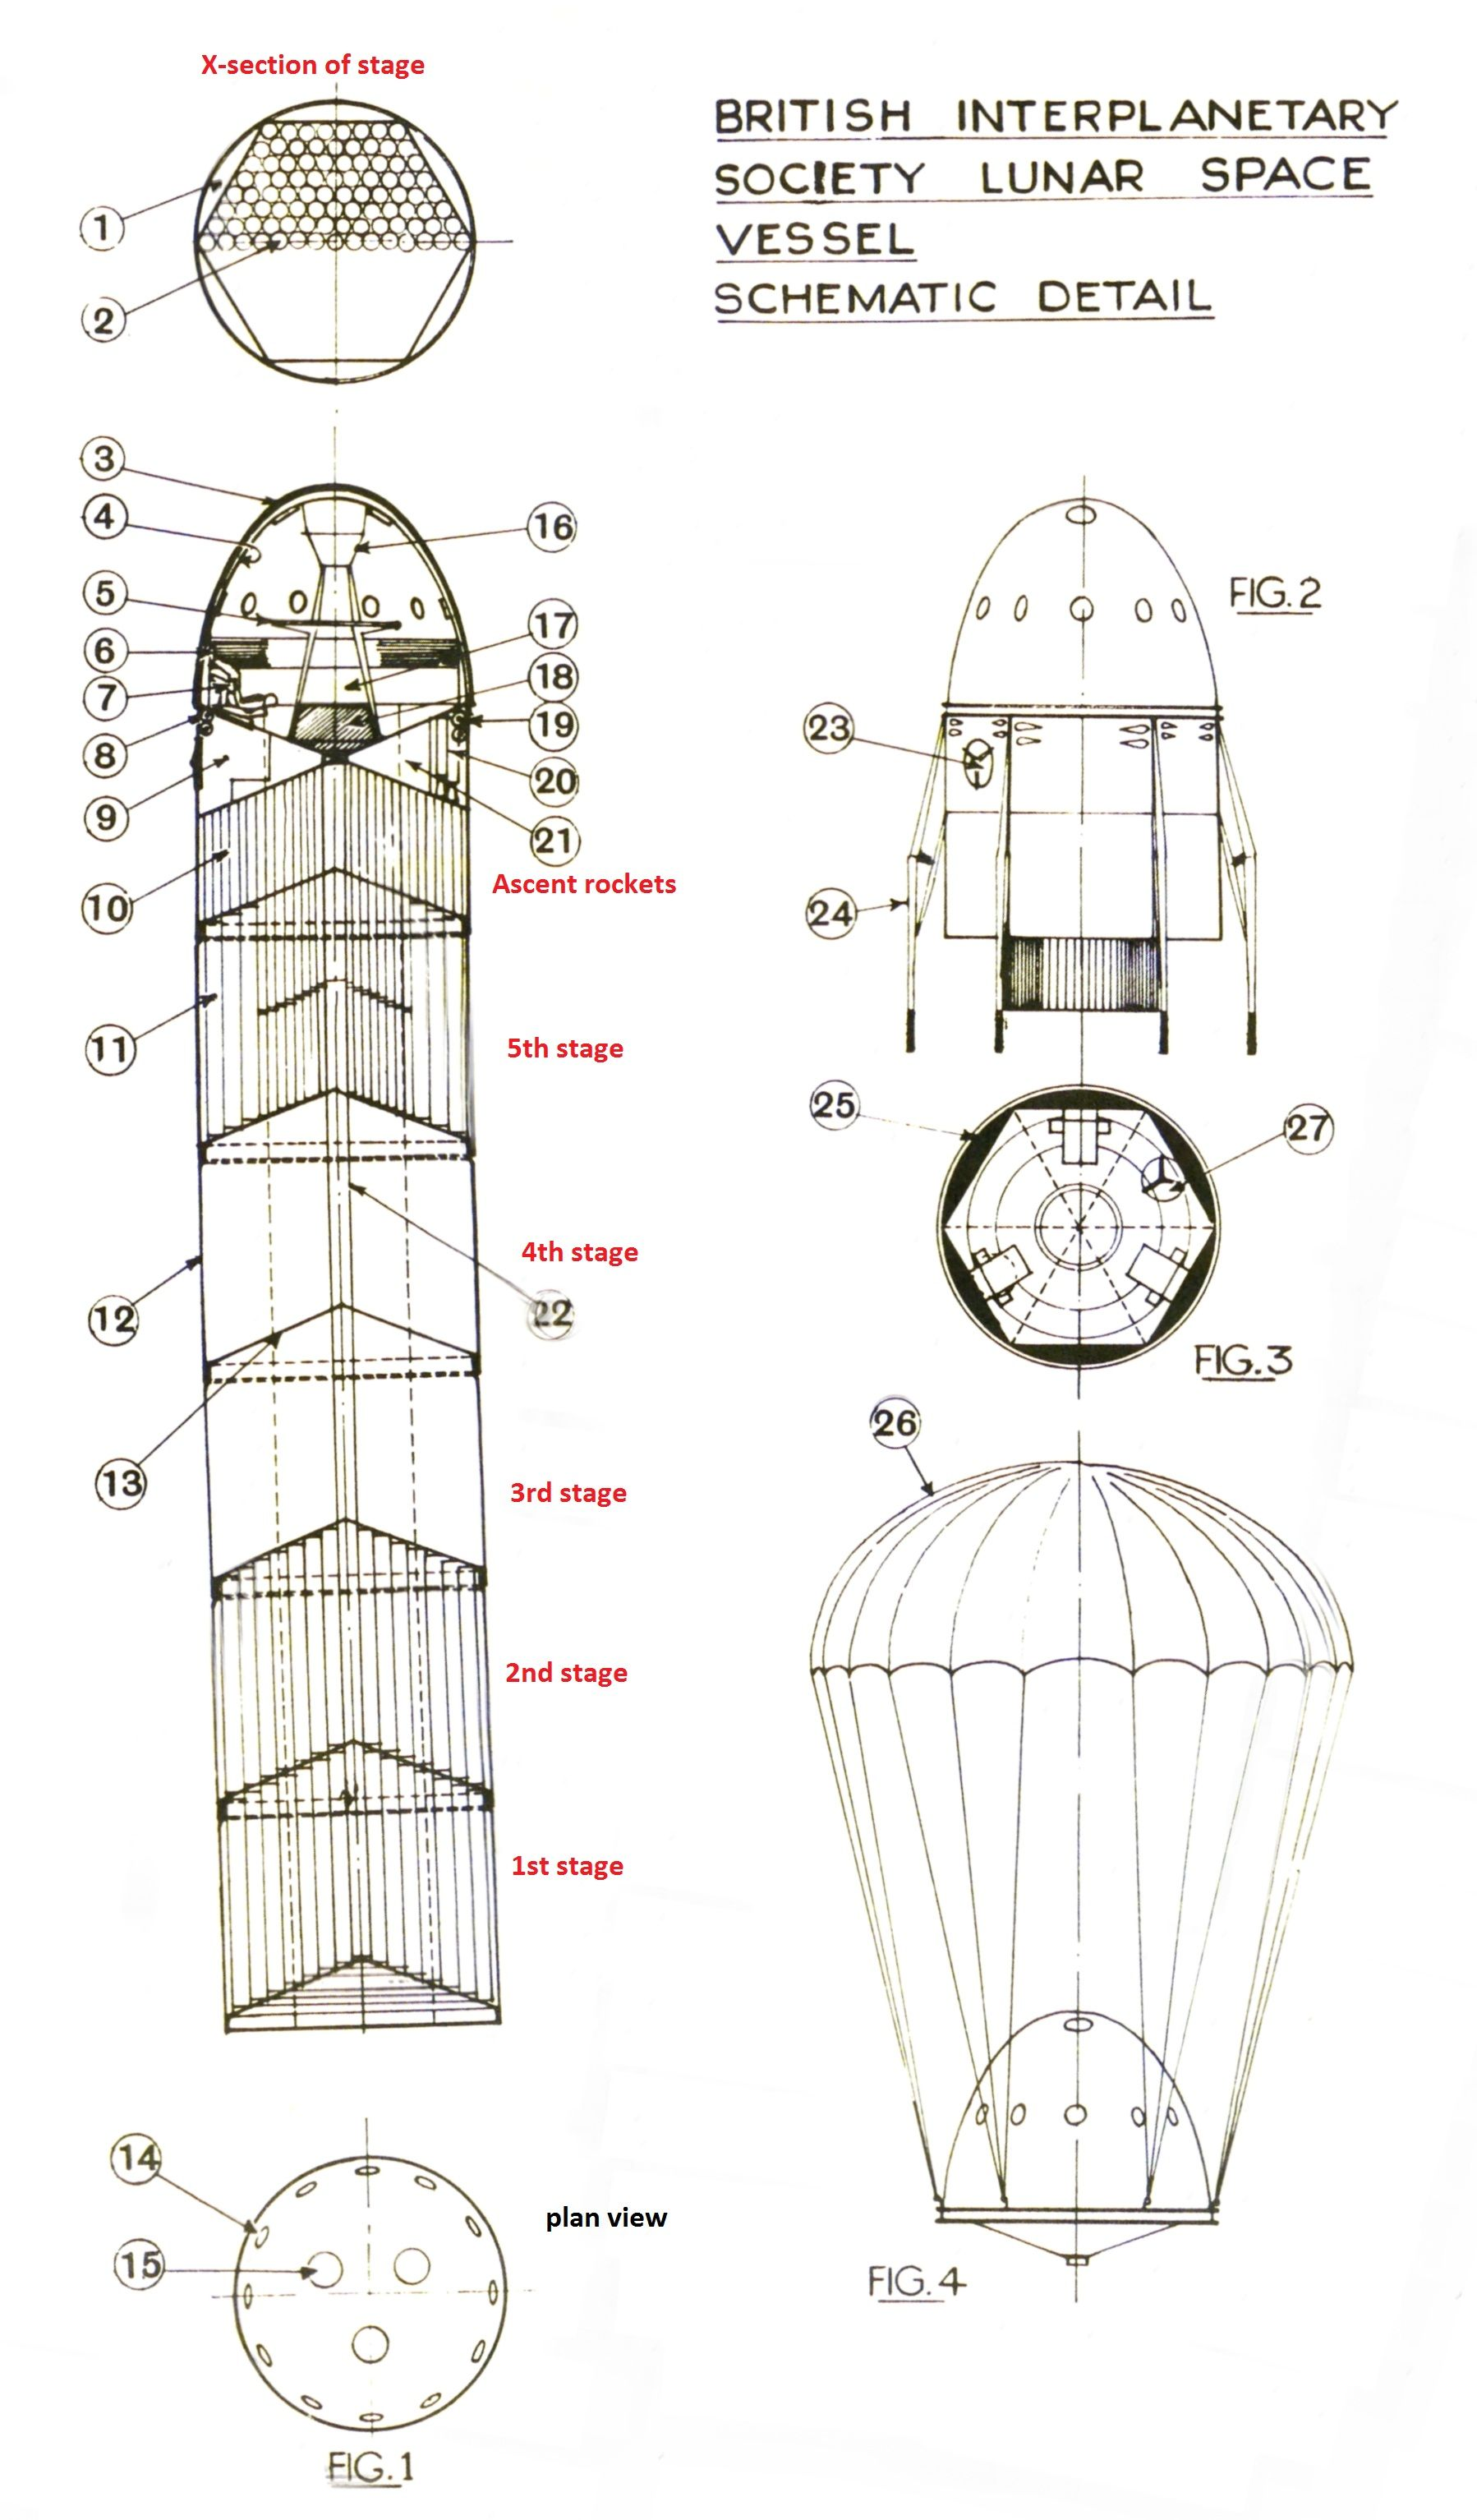 hight resolution of 1939 schematic of a 5 stage rocket spaceship to land on and return from the moon by the british interplanetary society artist r a smith